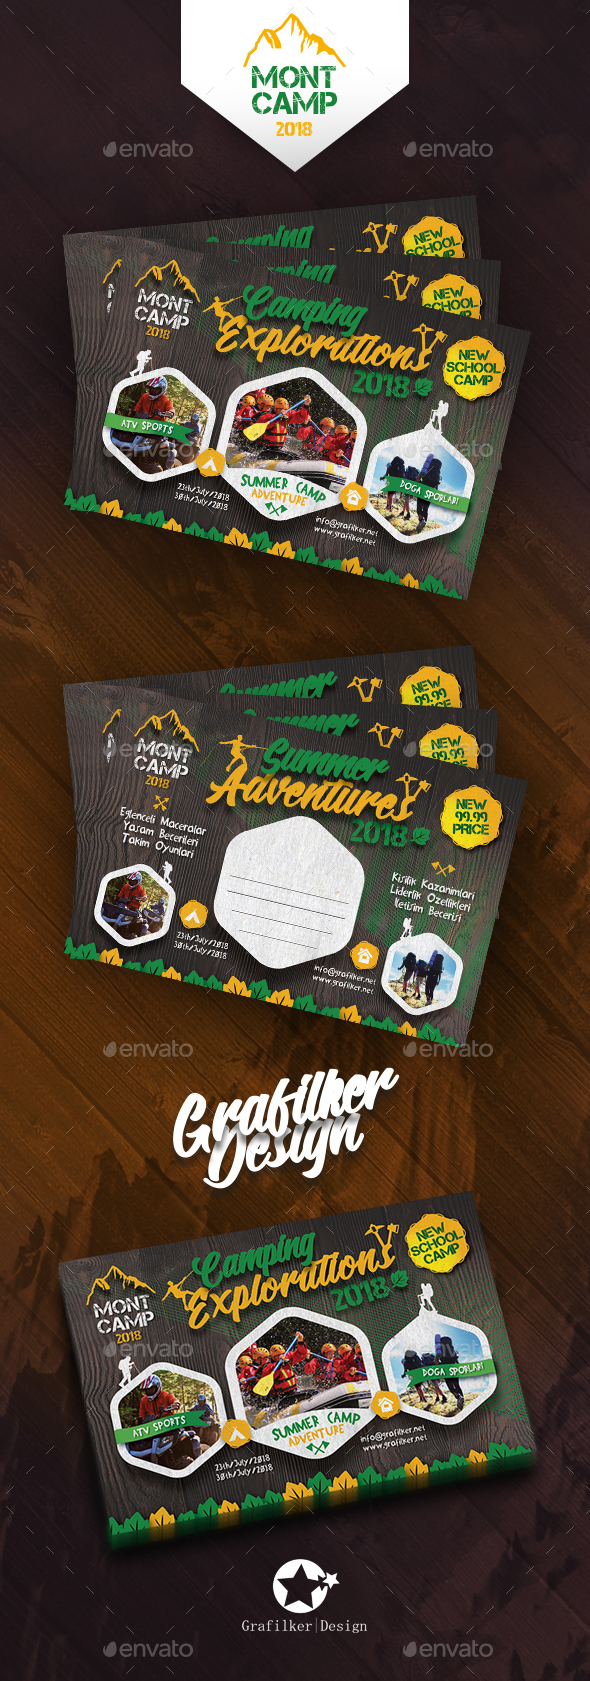 Camping Adventure Postcard Templates - Cards & Invites Print Templates